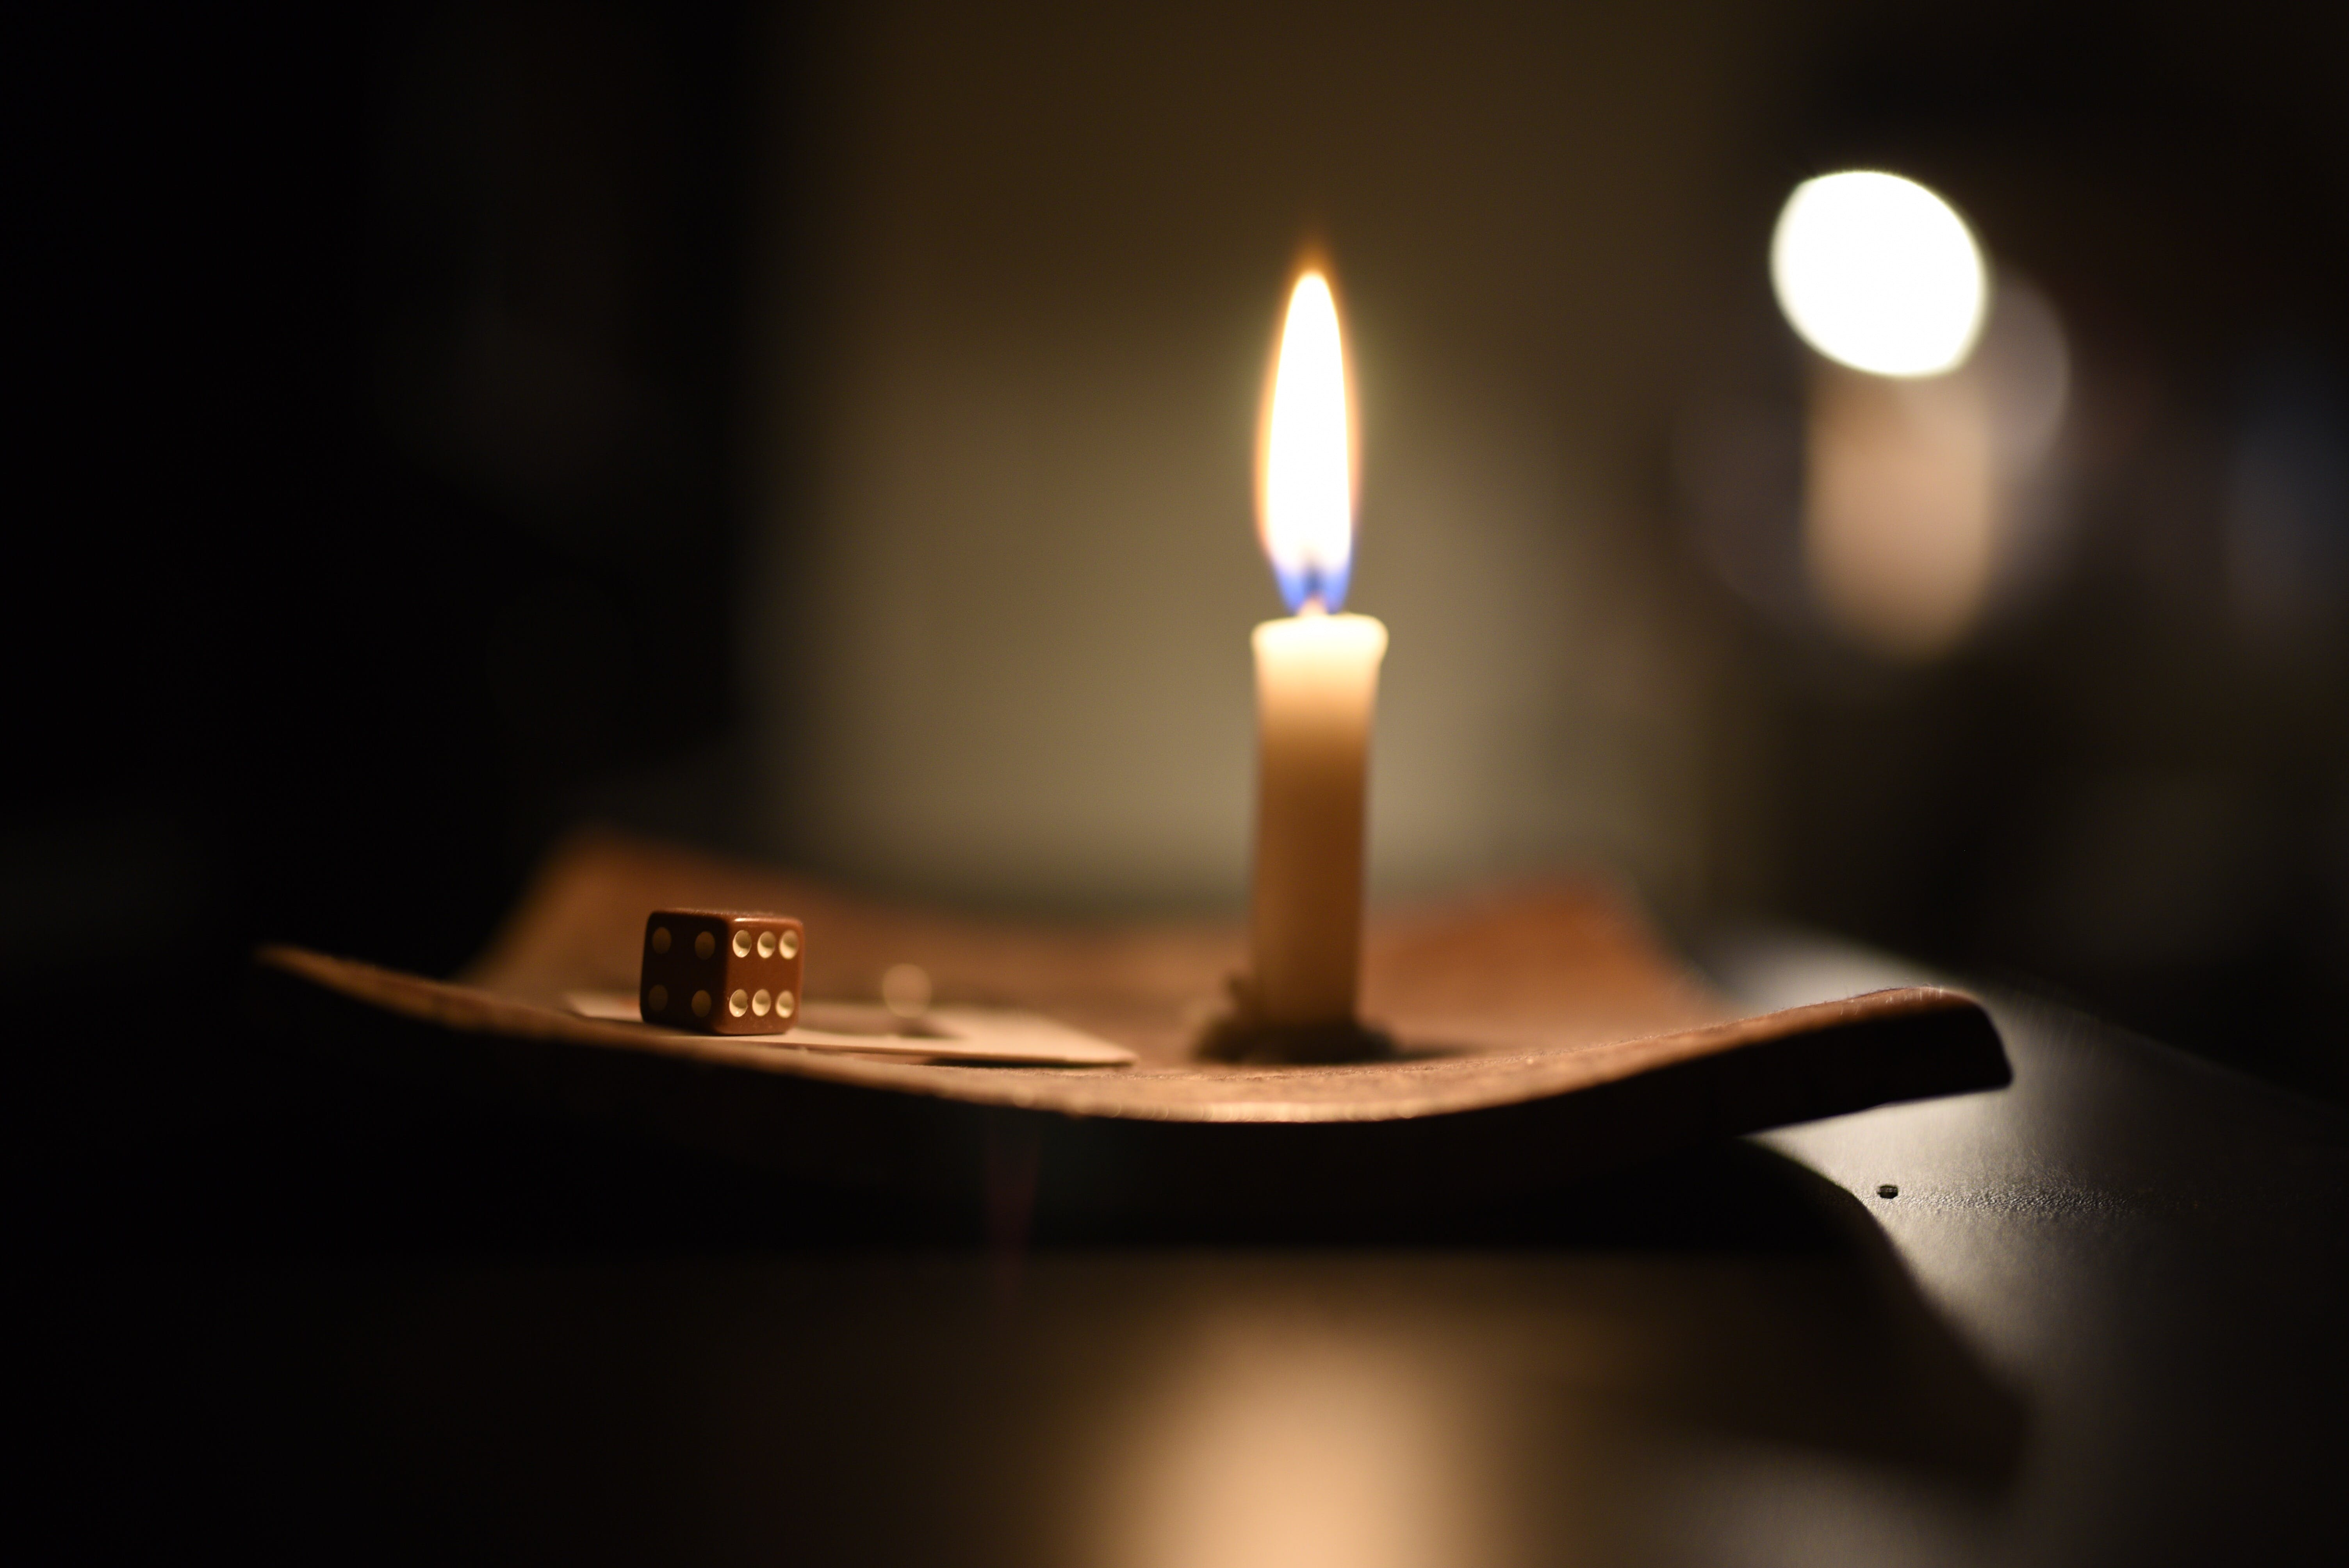 Free stock photo of candle light